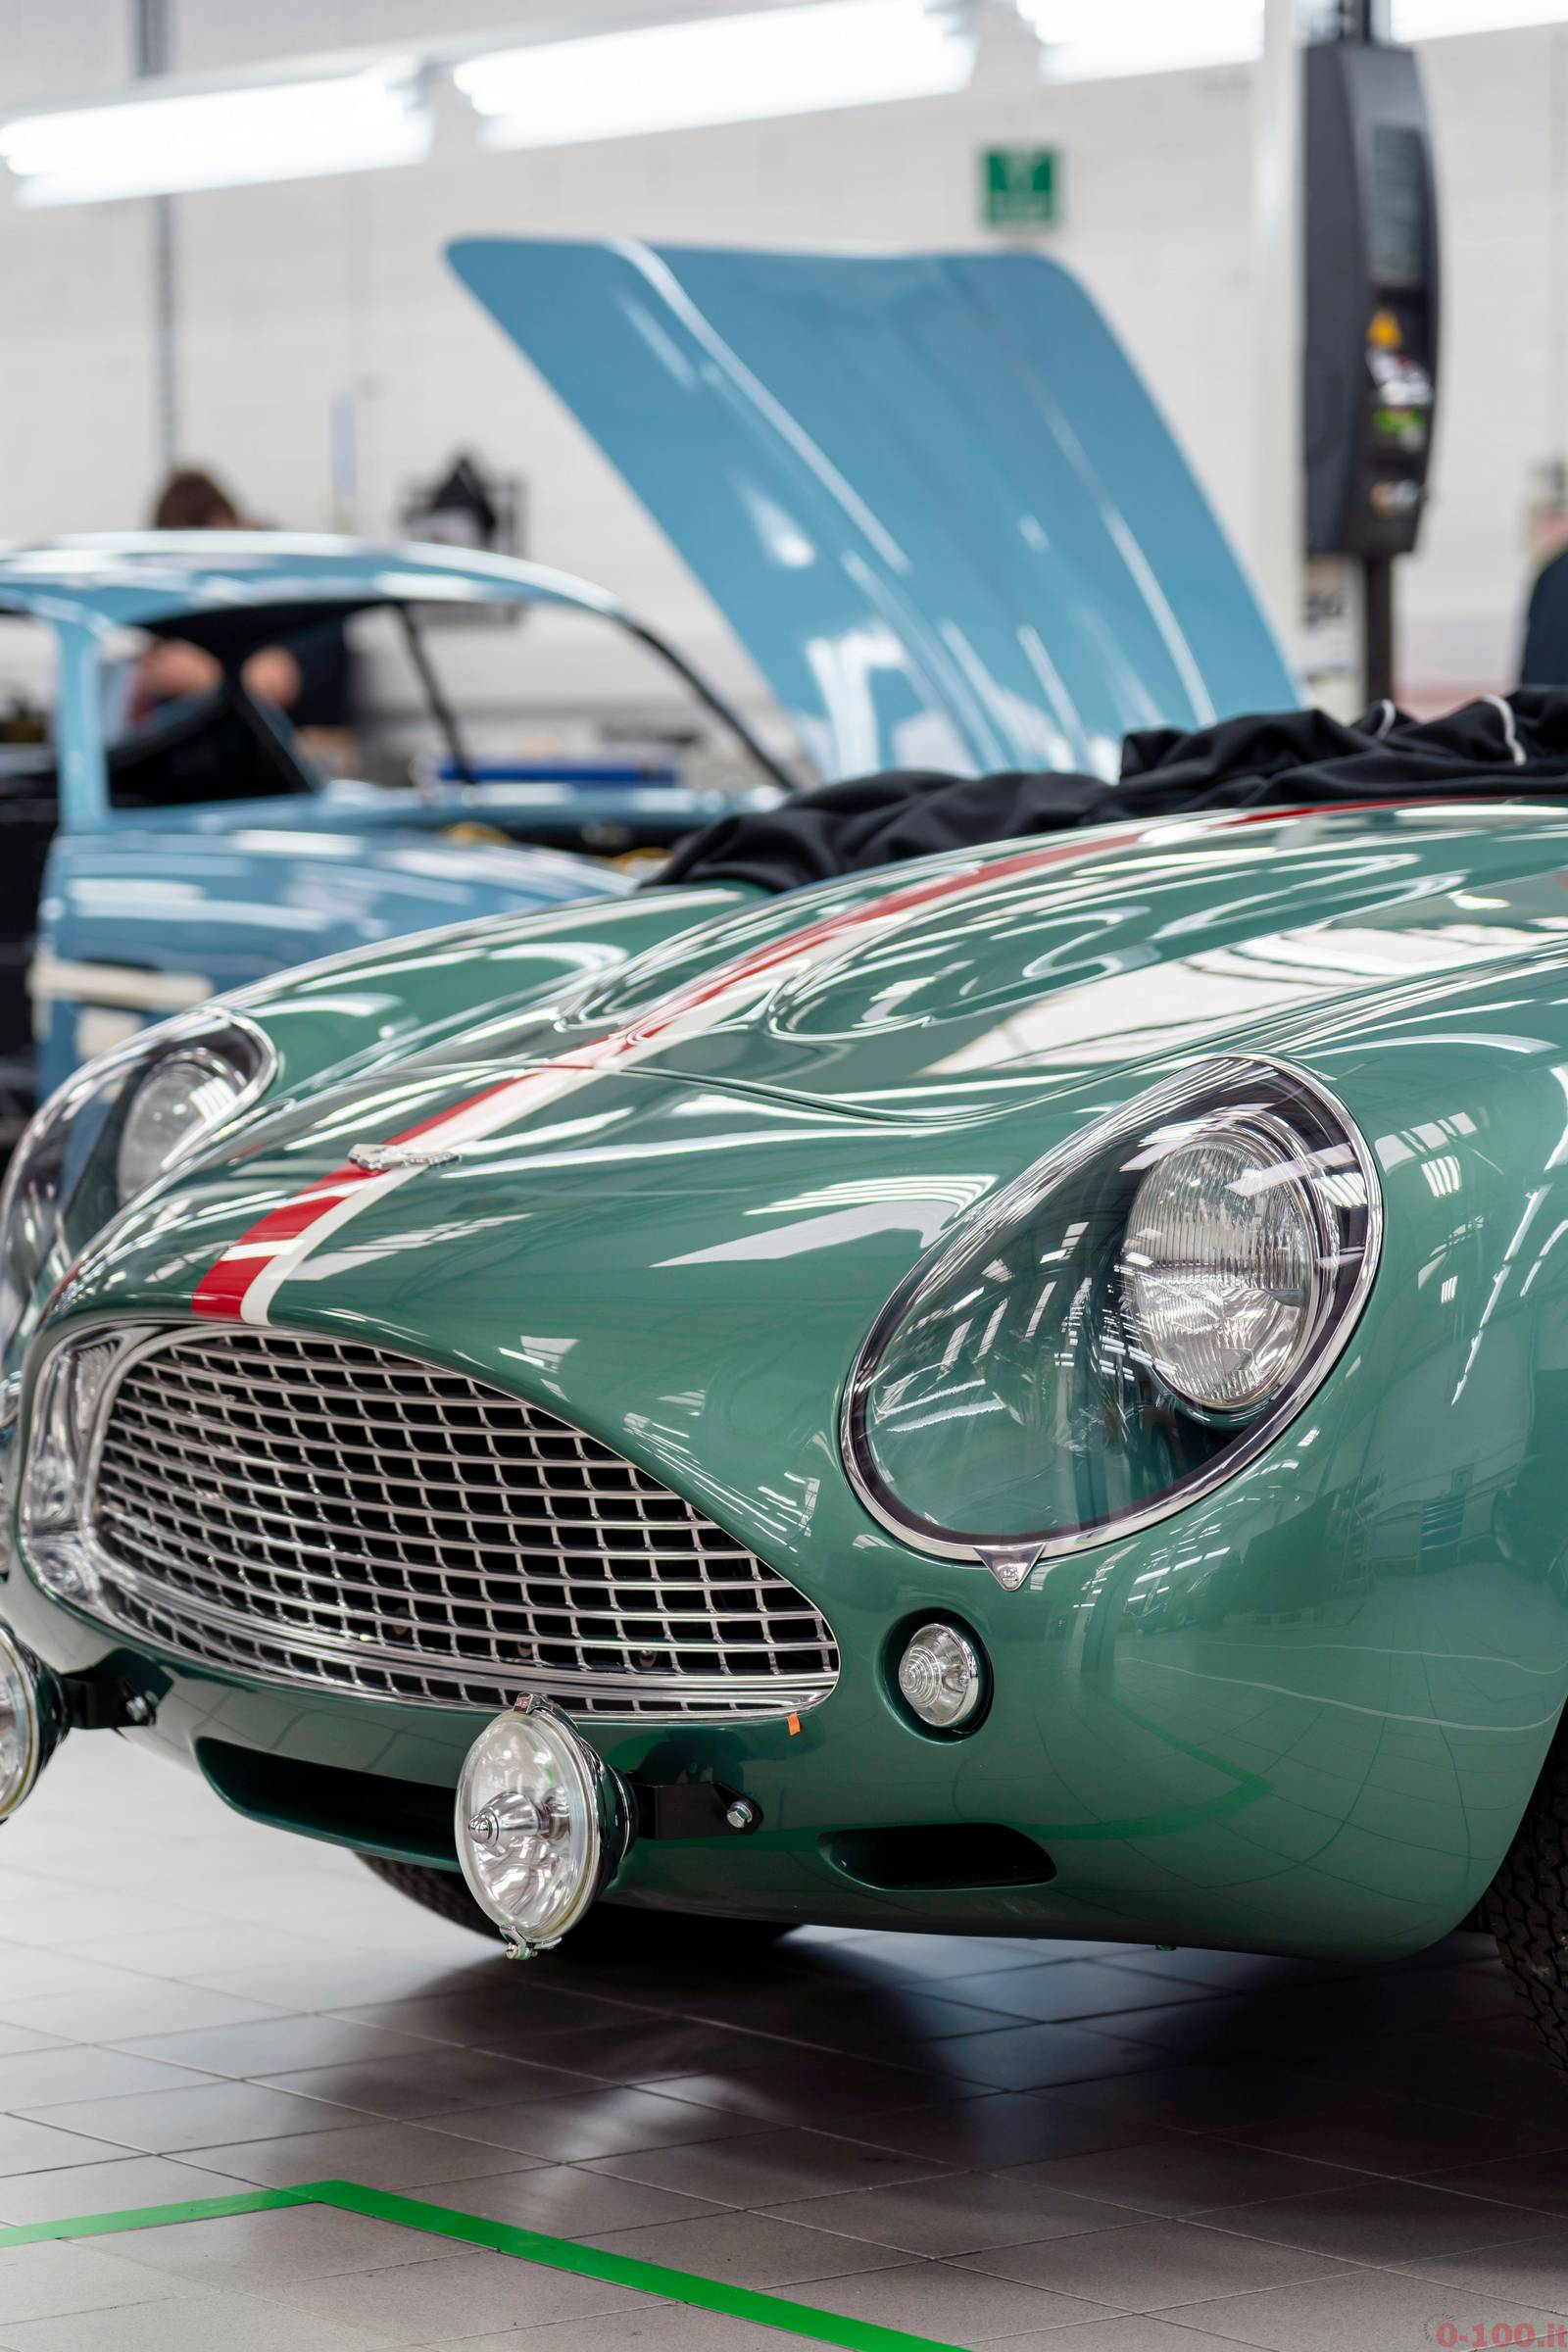 martin_db4_gtz_sanction_3_zagato_centenary_collection_0-100_8